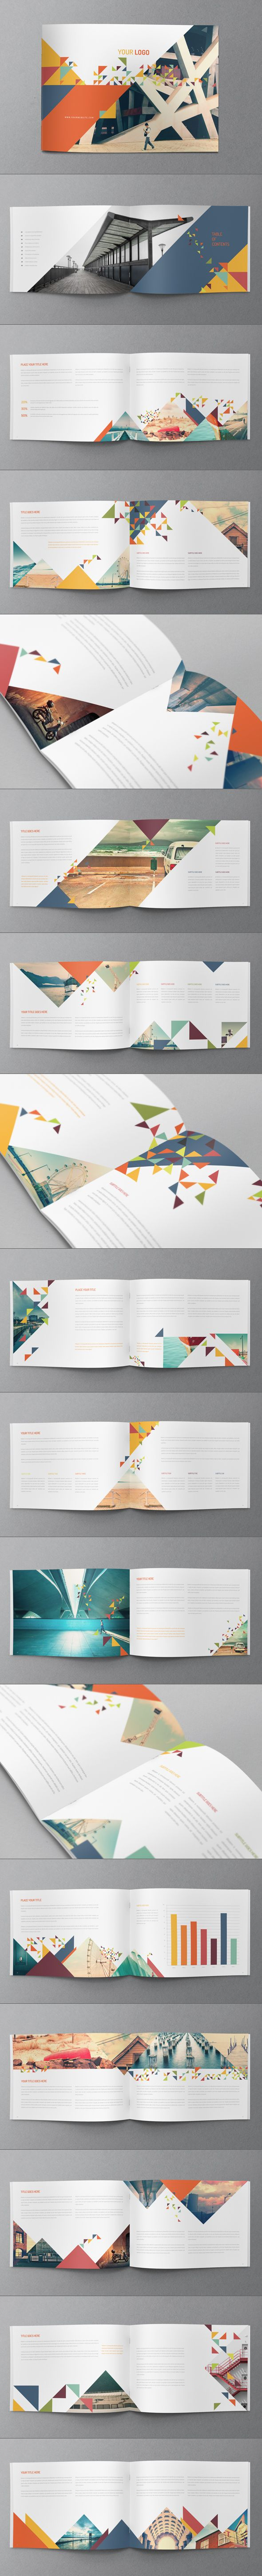 Colorful Modern Brochure by Abra Design, via Behance